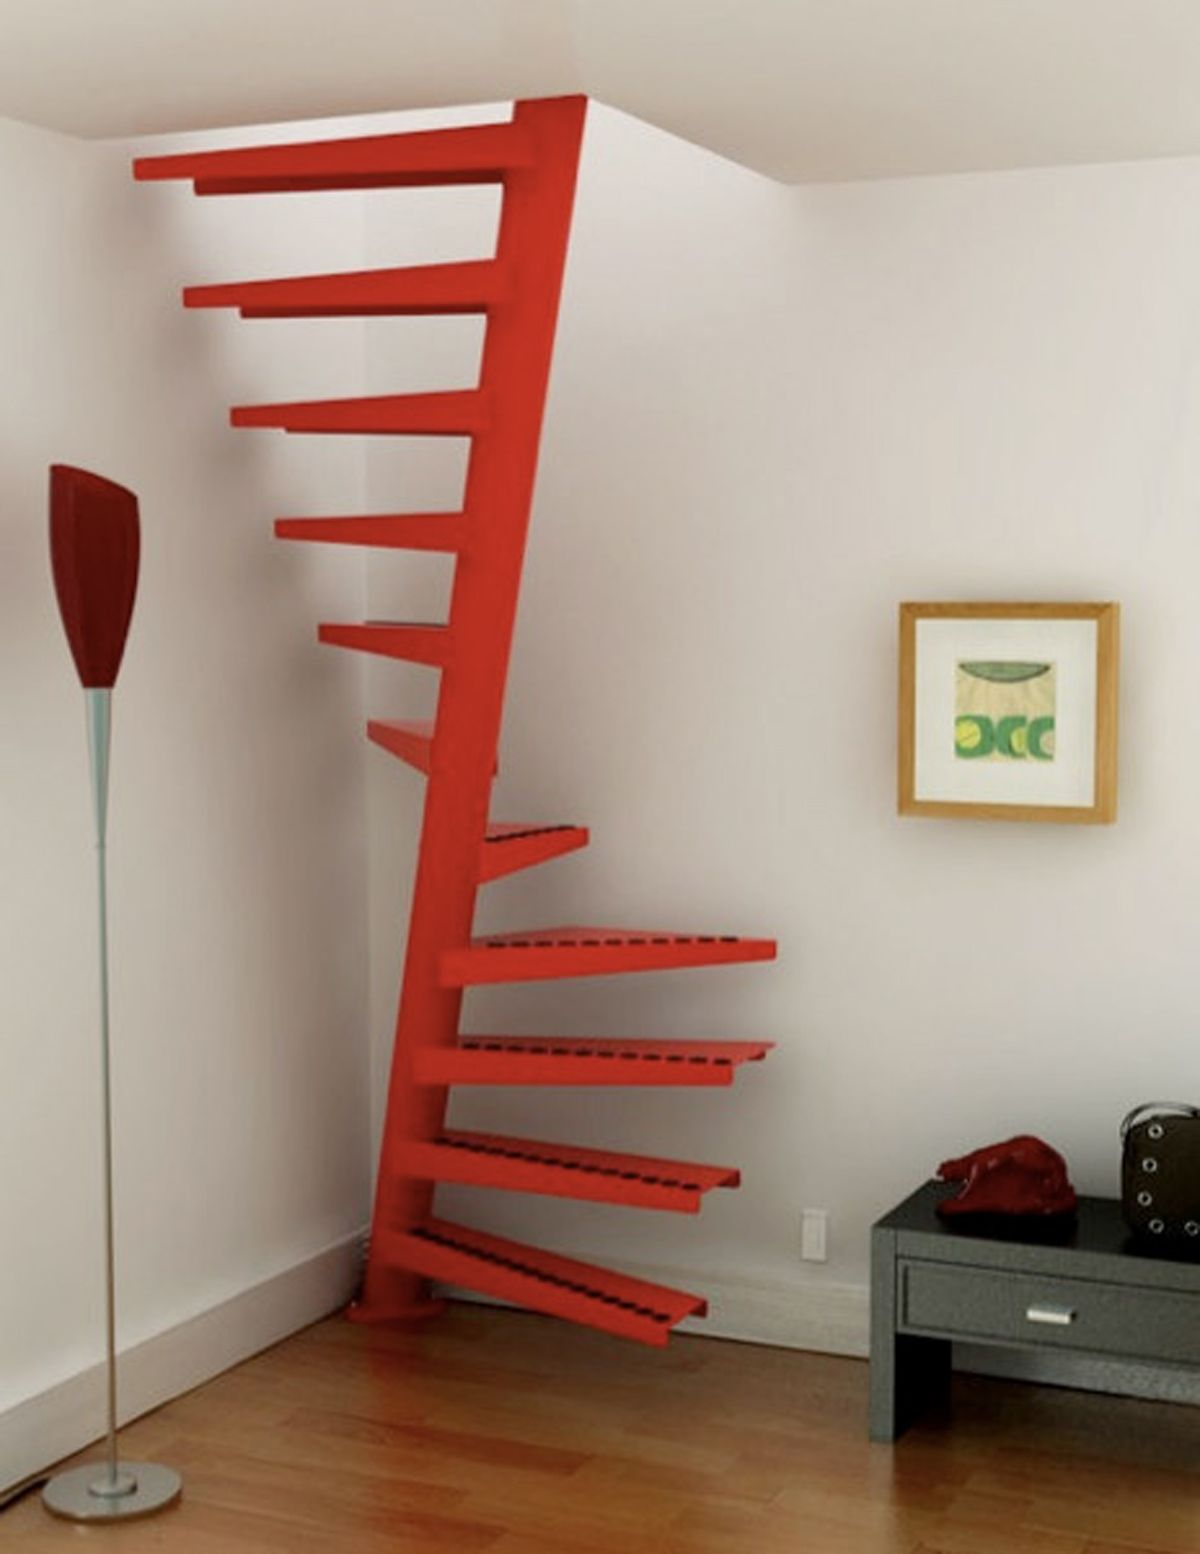 Interior designing nice space saving red spiral eestairs 1m2 staircase cool interior staircase